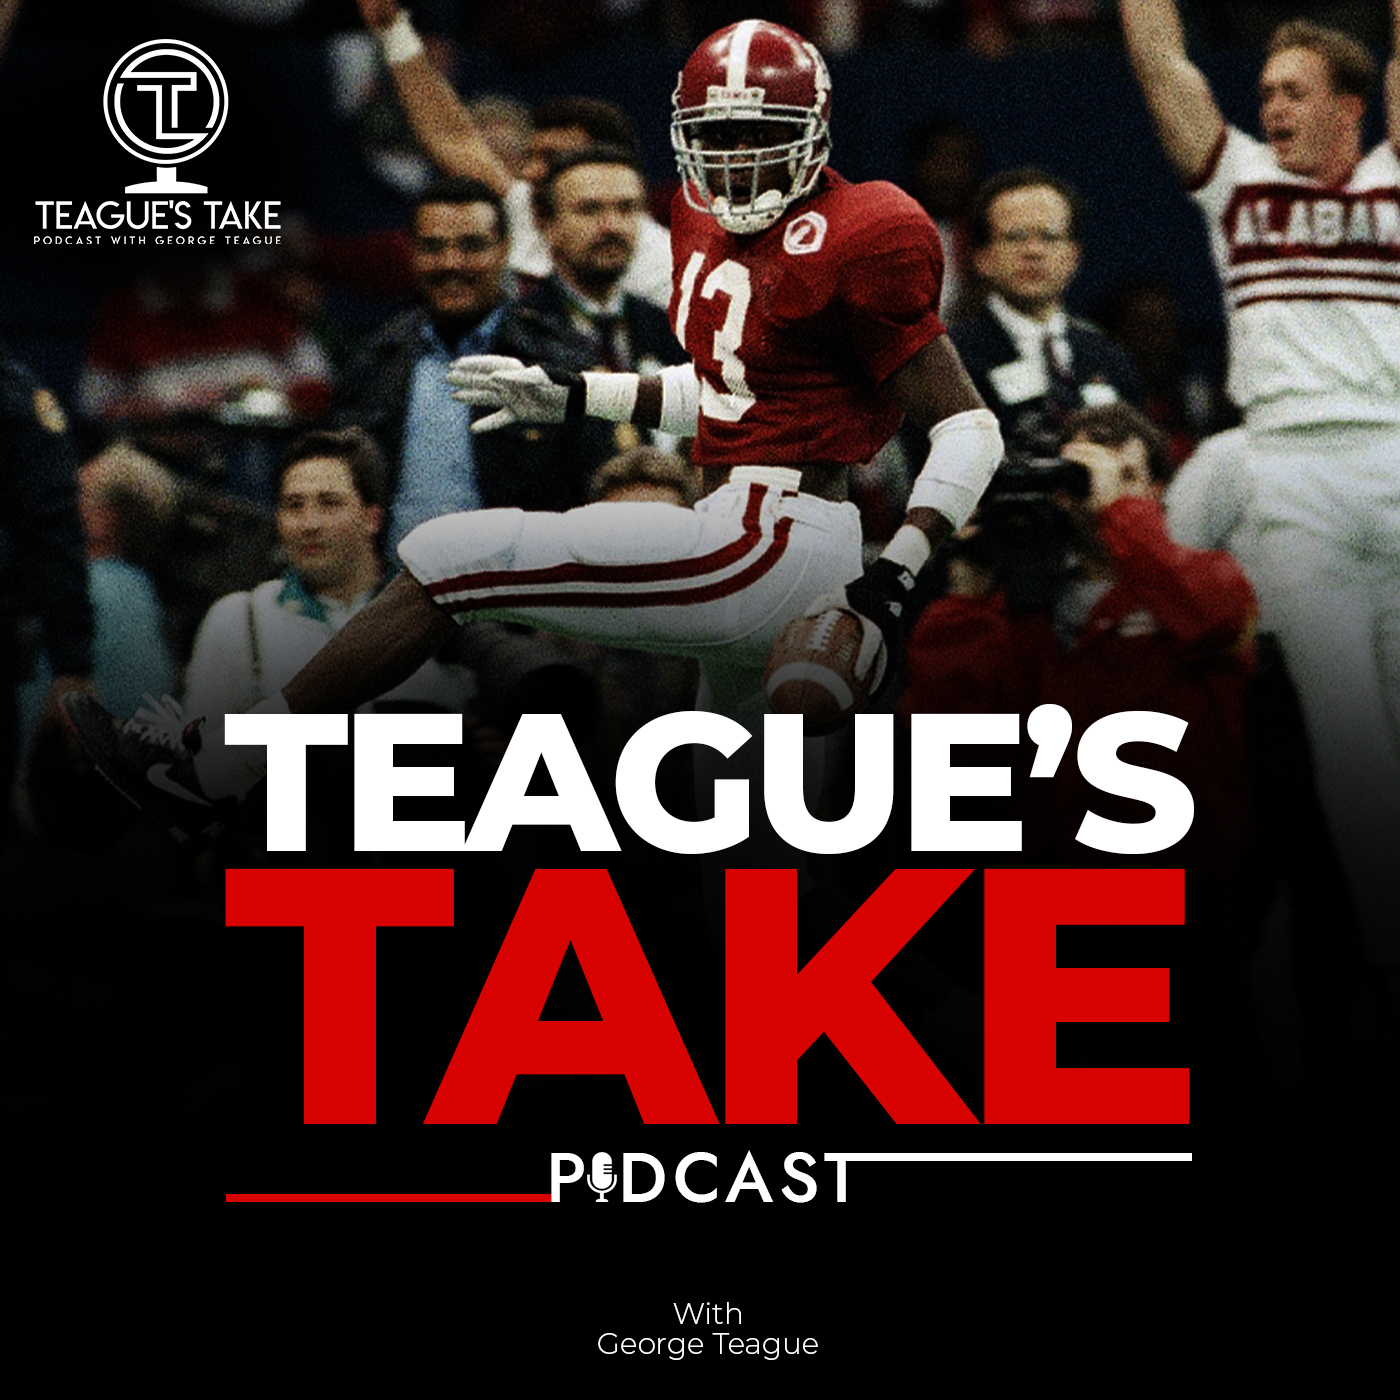 Teague's Take with George Teague